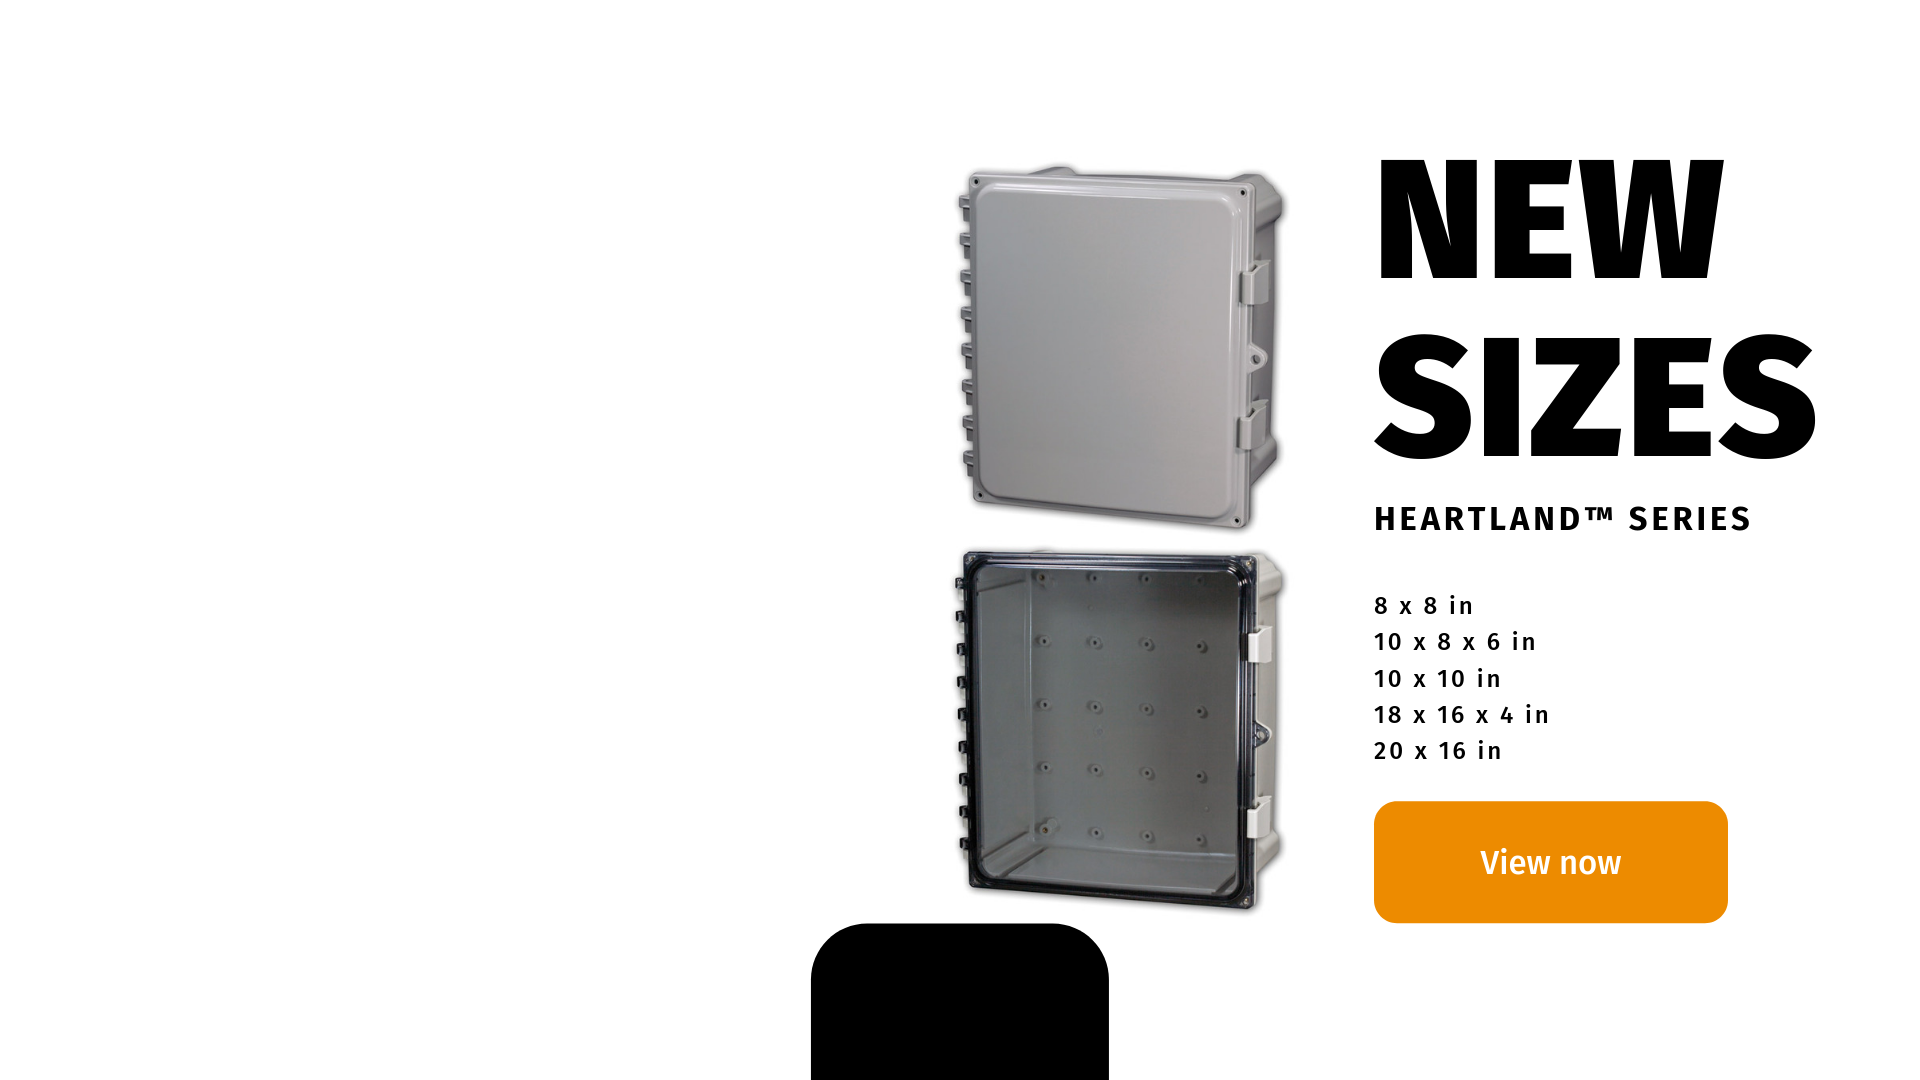 New sizes available for Heartland series non-metallic enclosures..